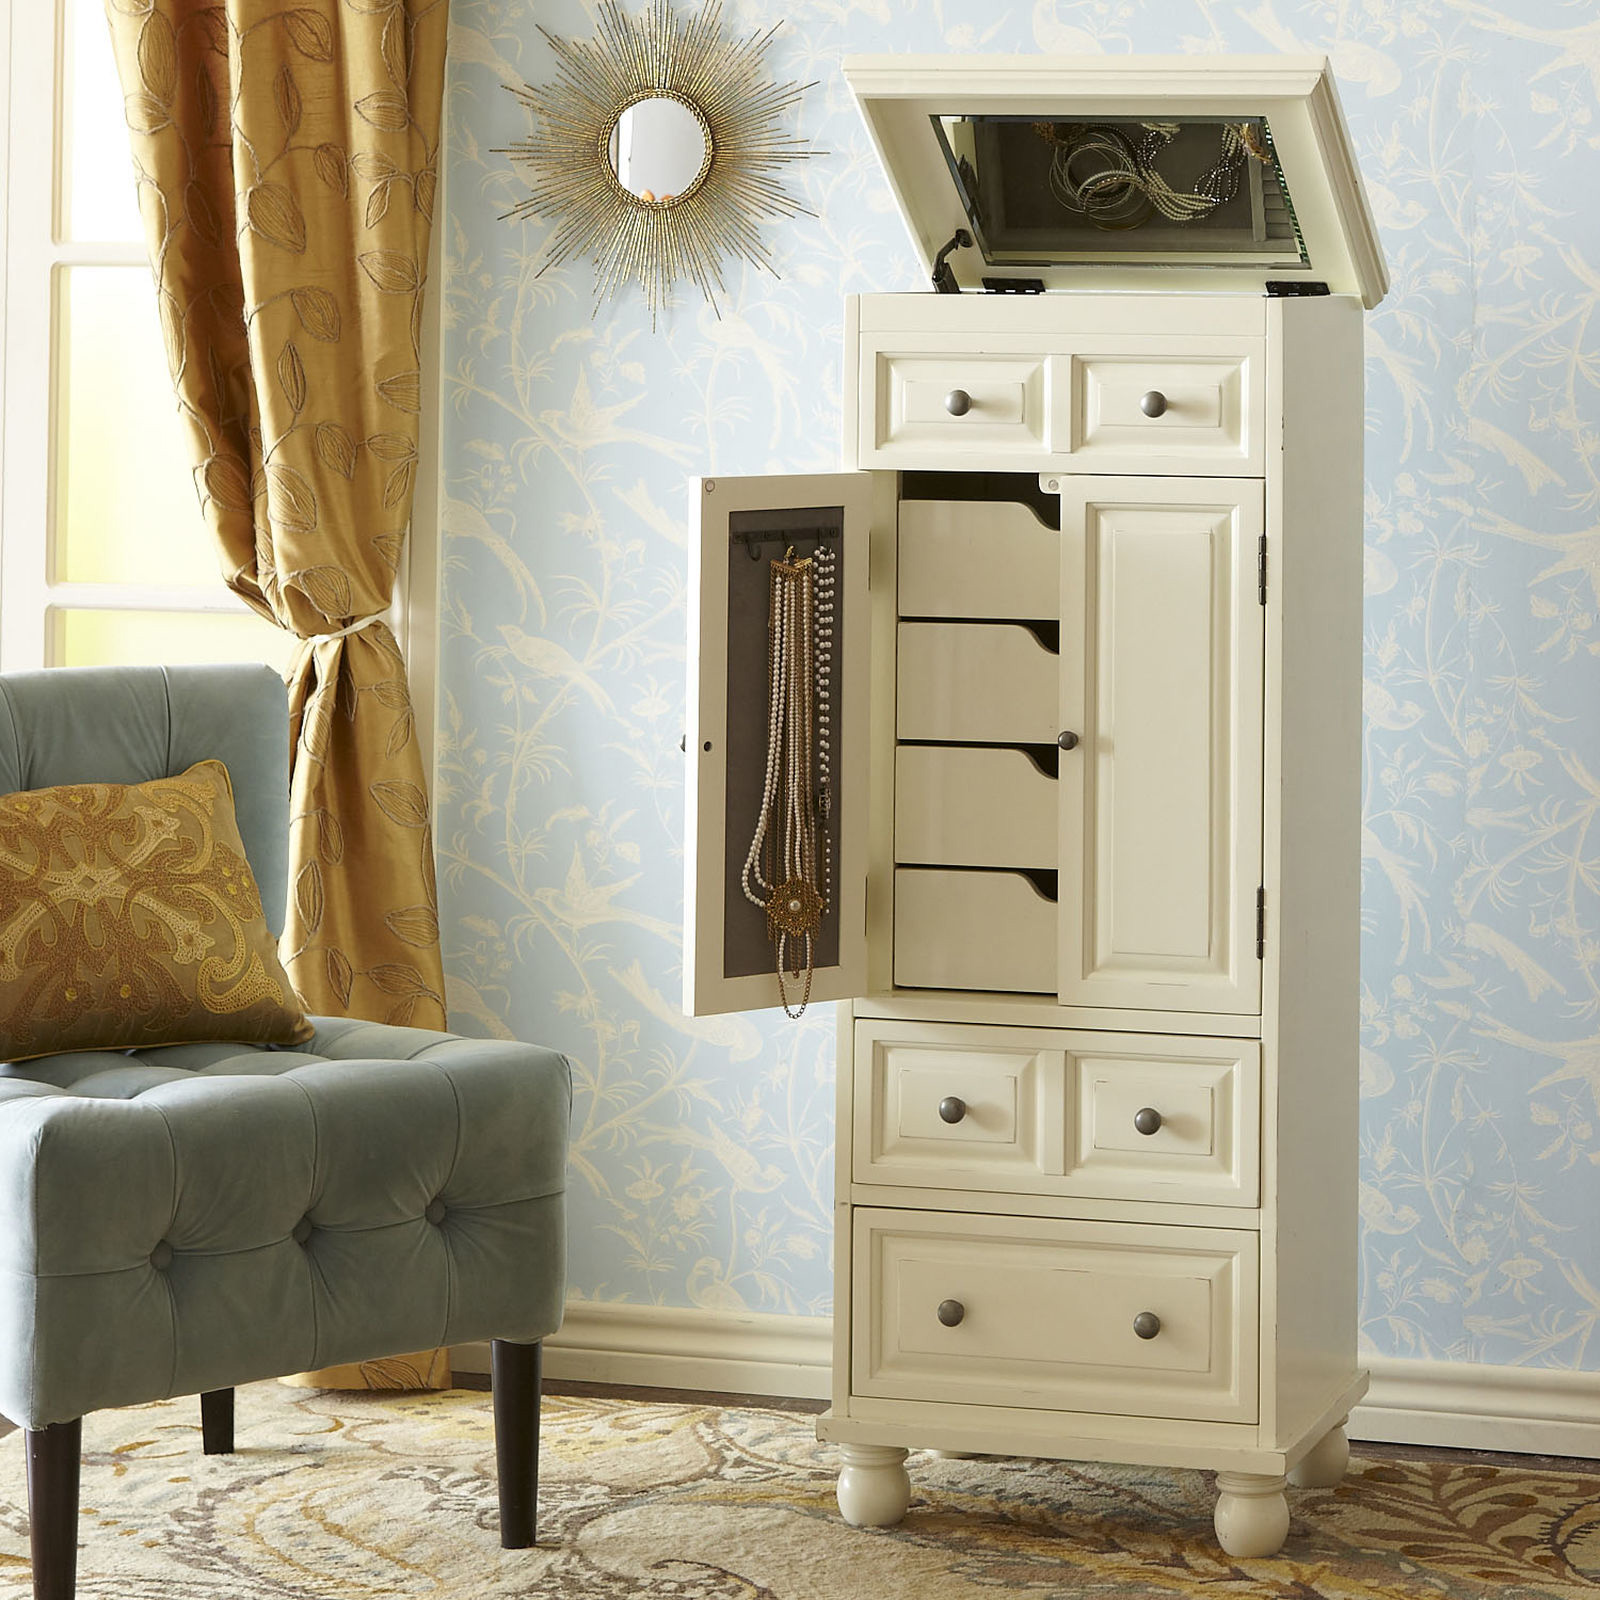 Tall Wide White Floor Standing Jewelry Armoire